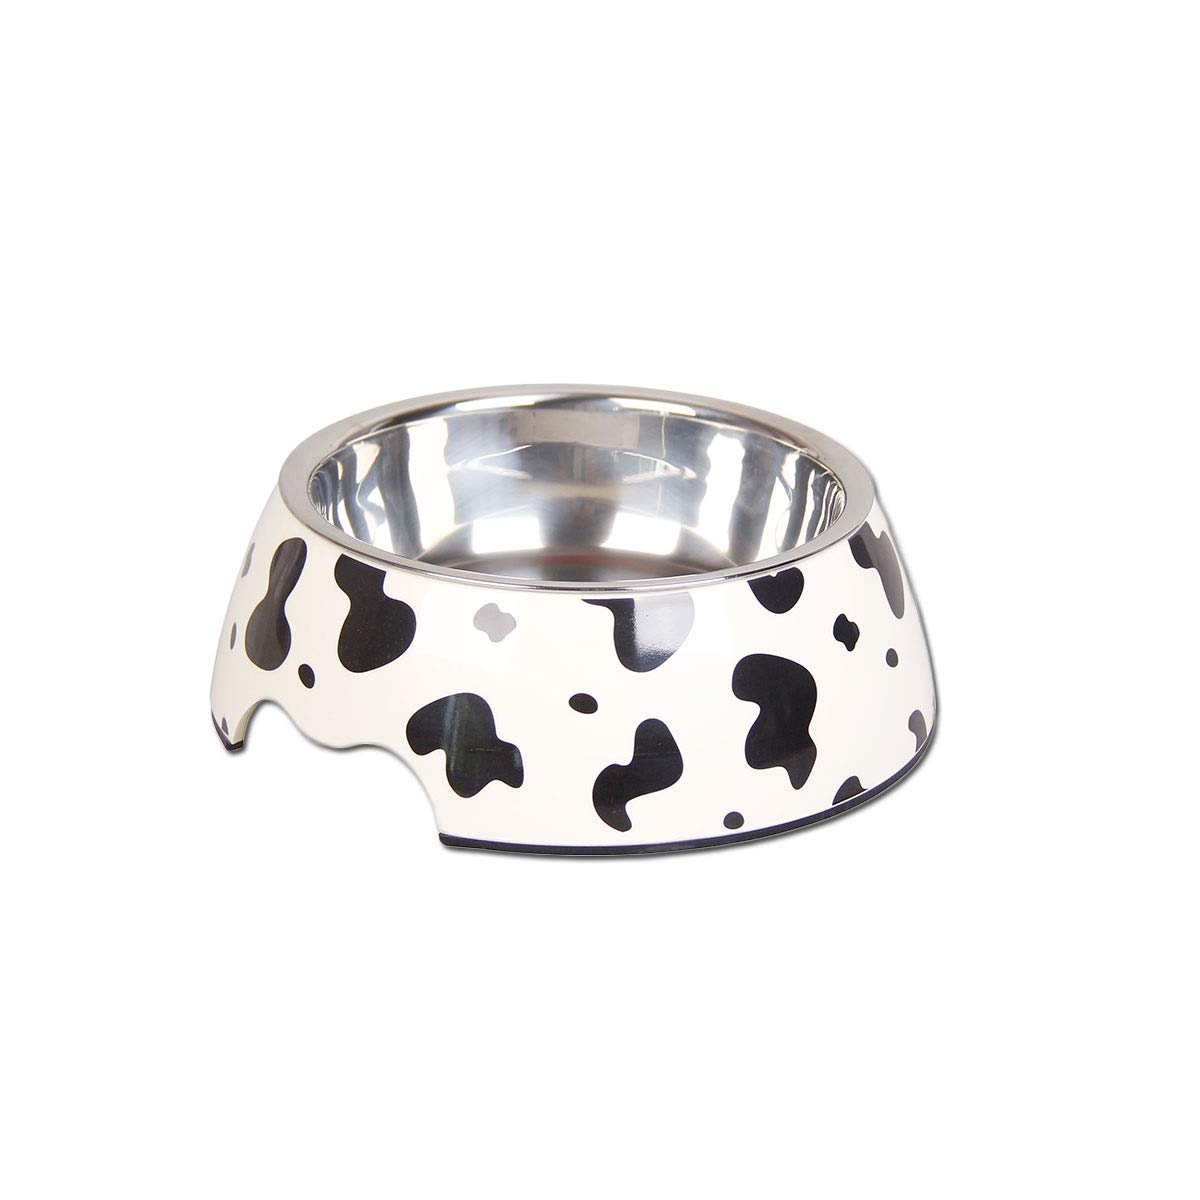 Cow L Cow L XIAN Dog Bowl Cat Bowl Double Bowl Stainless Steel Pet Supplies Cow, Gypsophila, Giraffe S M L. Easy to Clean Bacteria & Rust Resistant (color   Cow, Size   L)